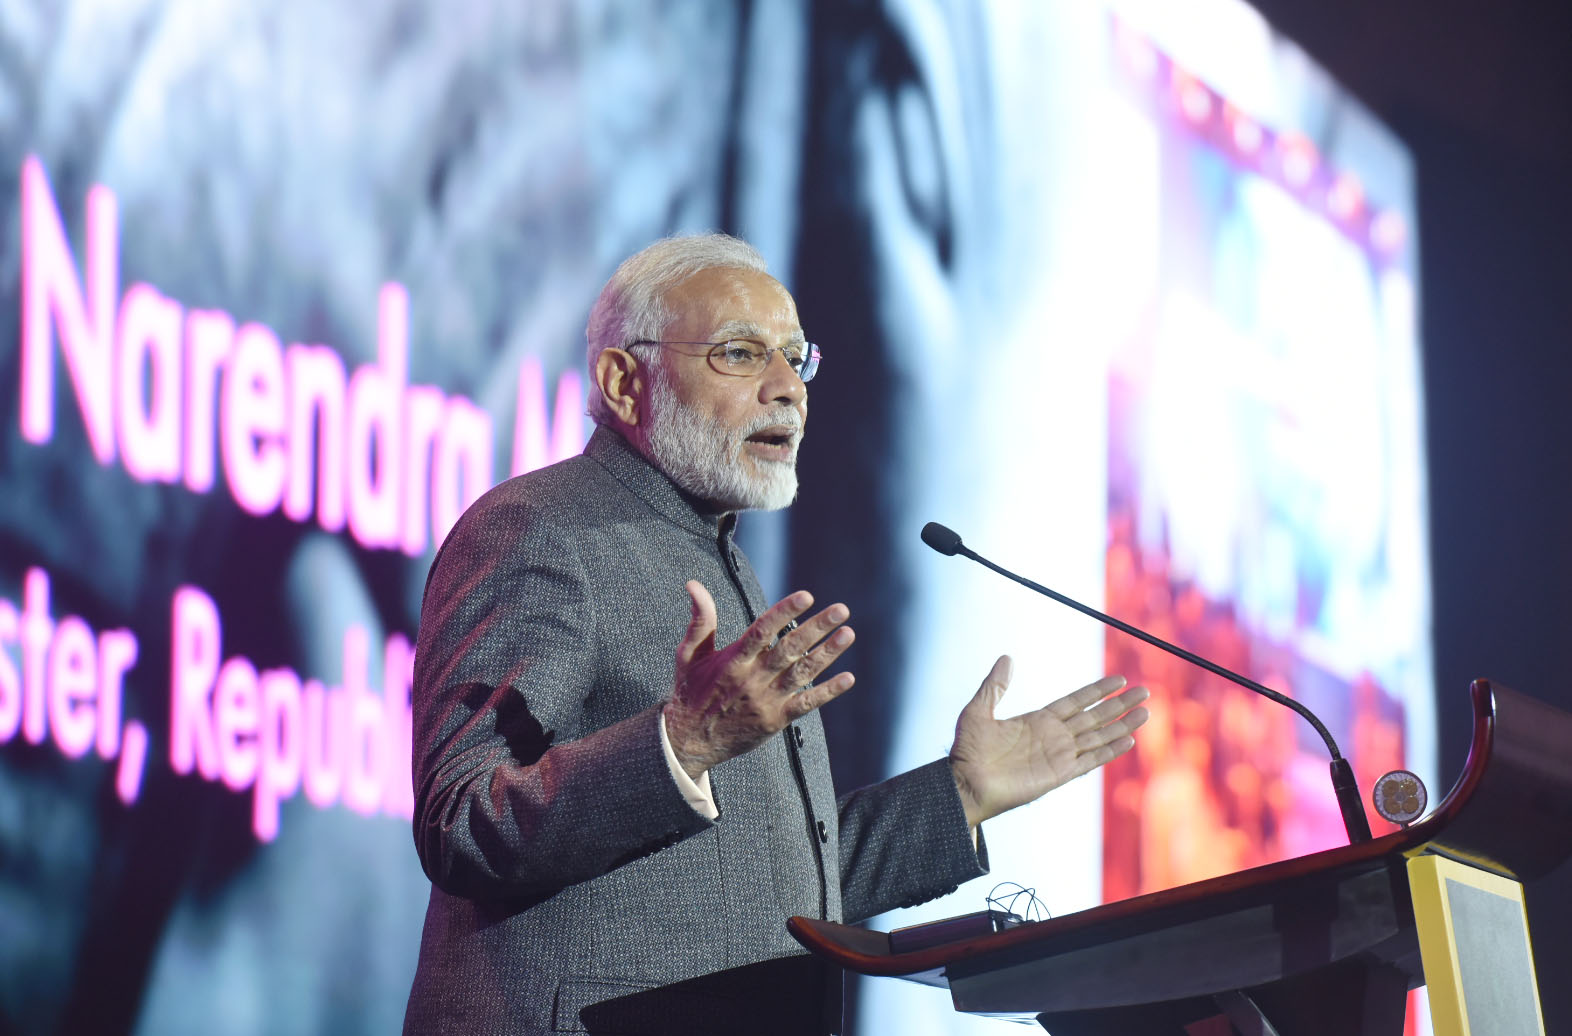 The Prime Minister, Shri Narendra Modi addressing at the ASEAN Business and Investment Summit (ABIS) 2017, in Manila, Philippines on November 13, 2017.